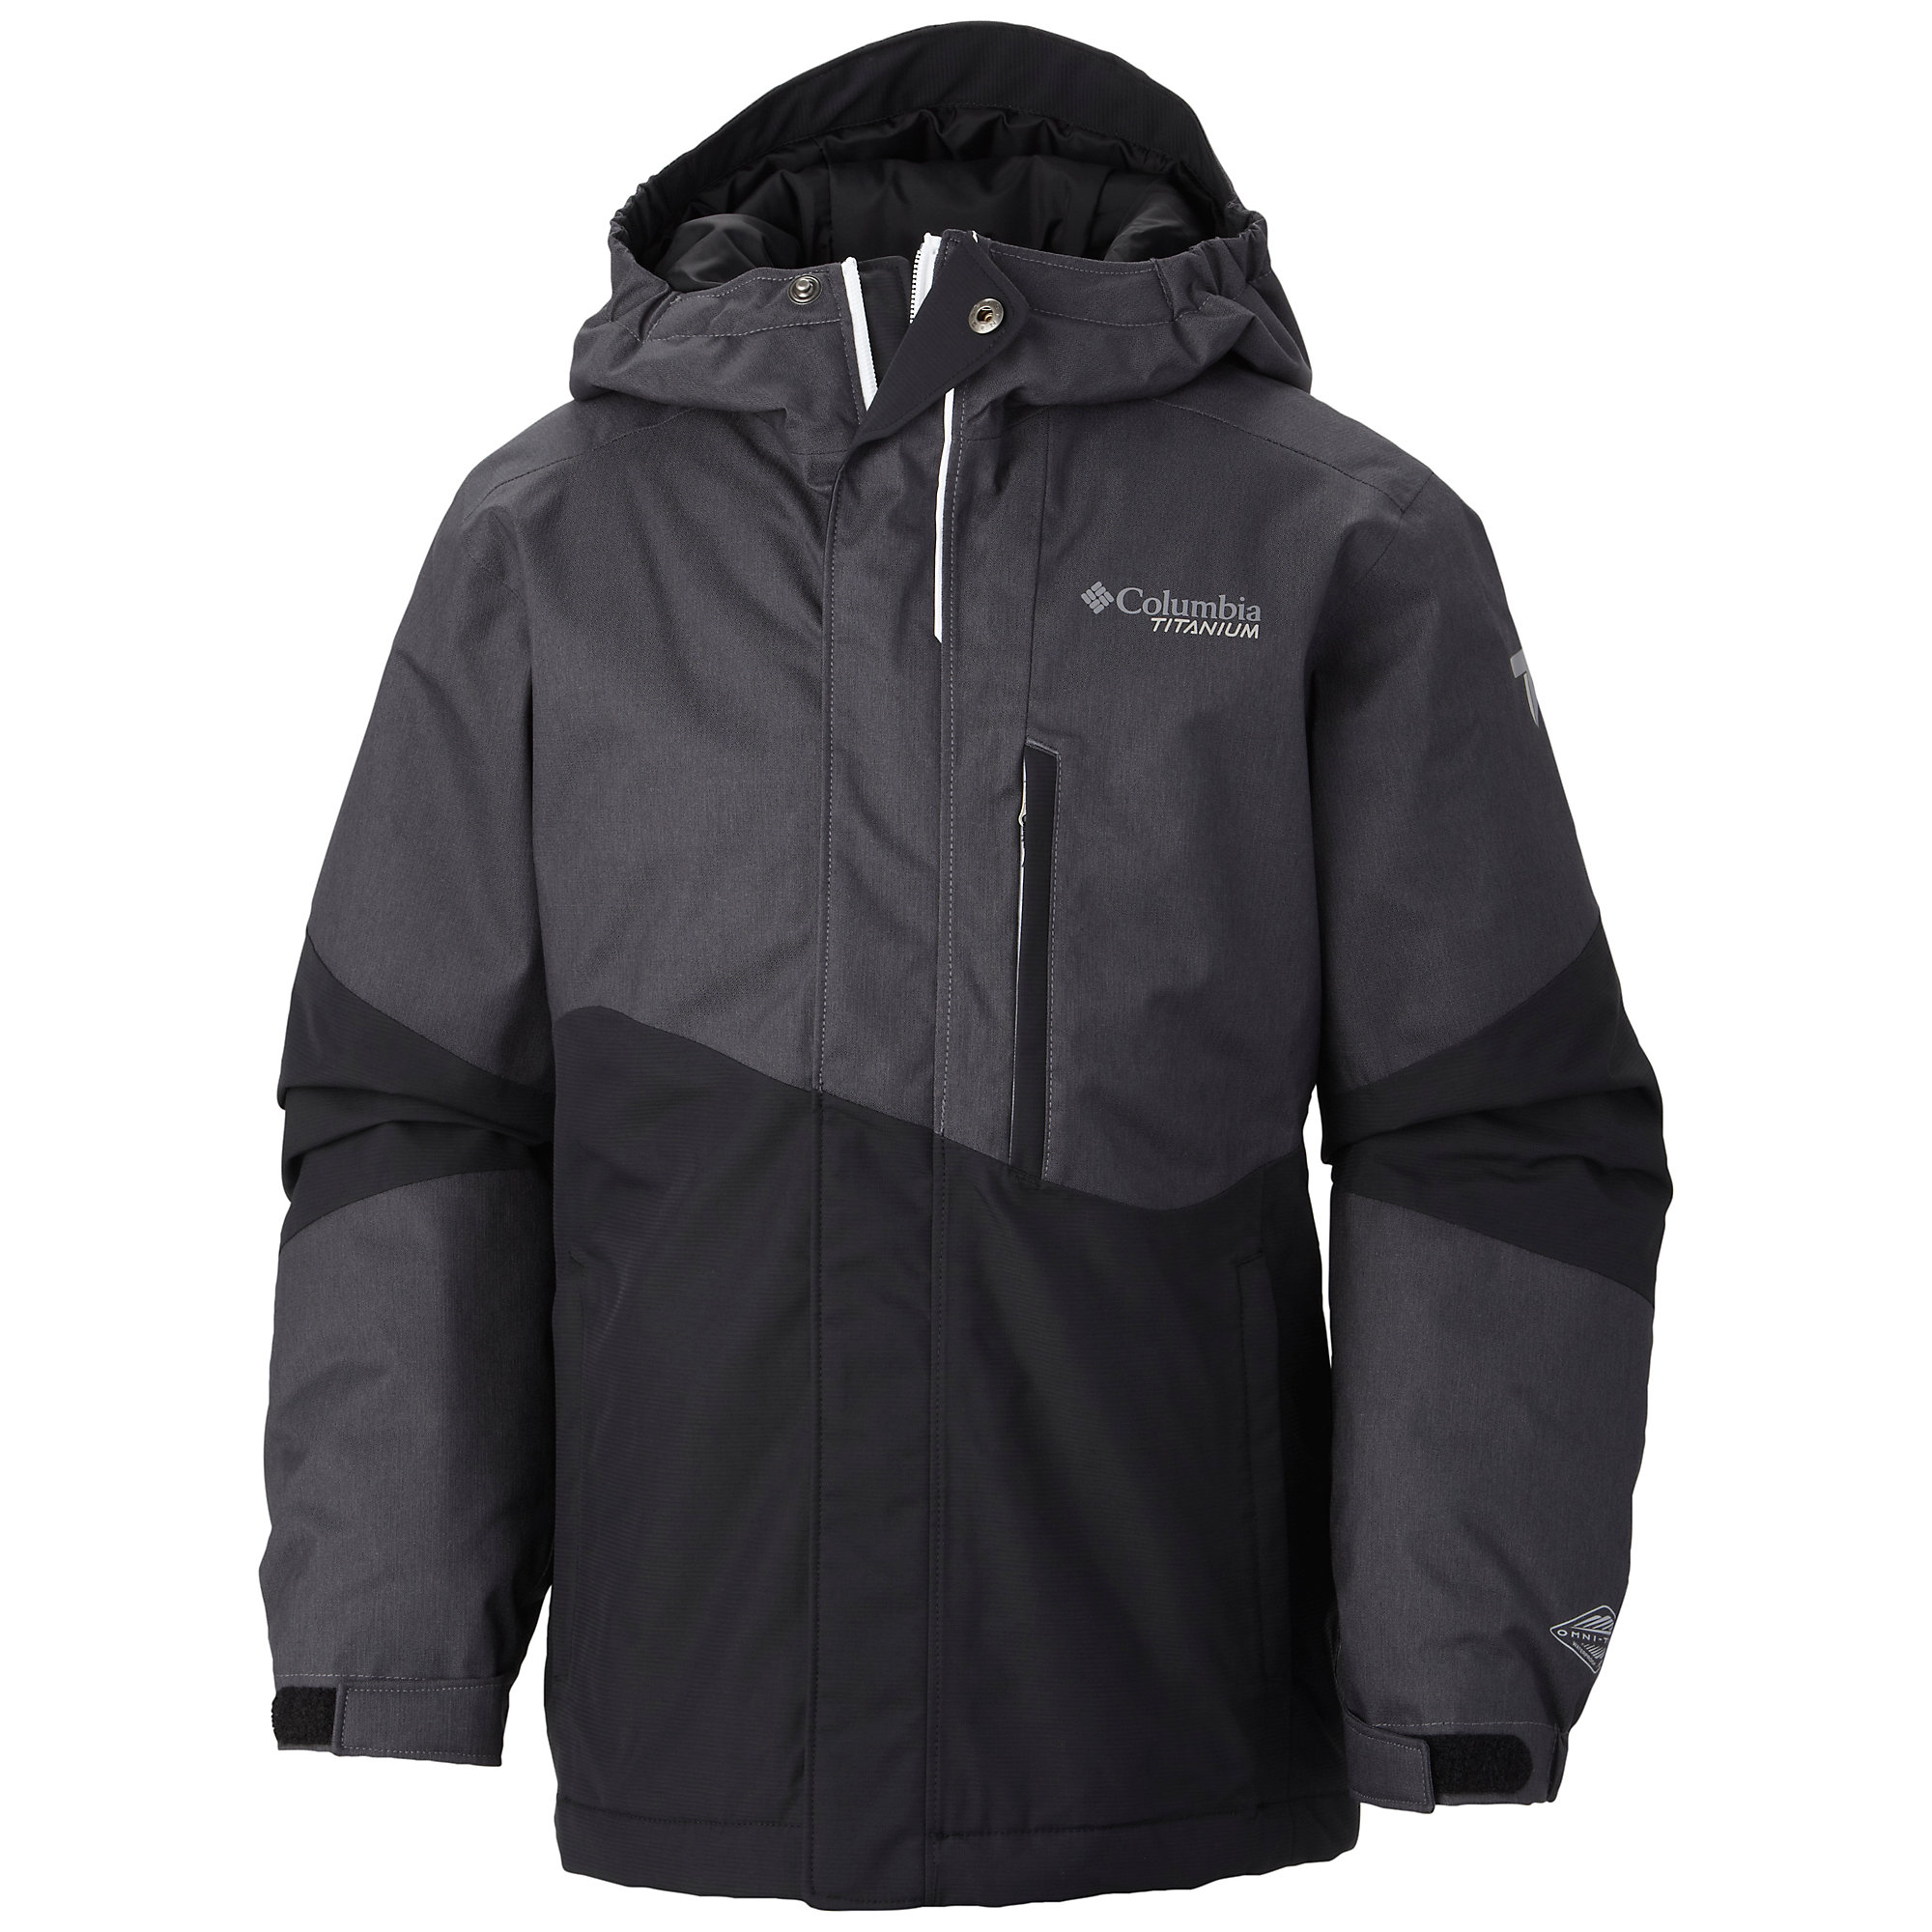 Columbia Shreddin' Jacket